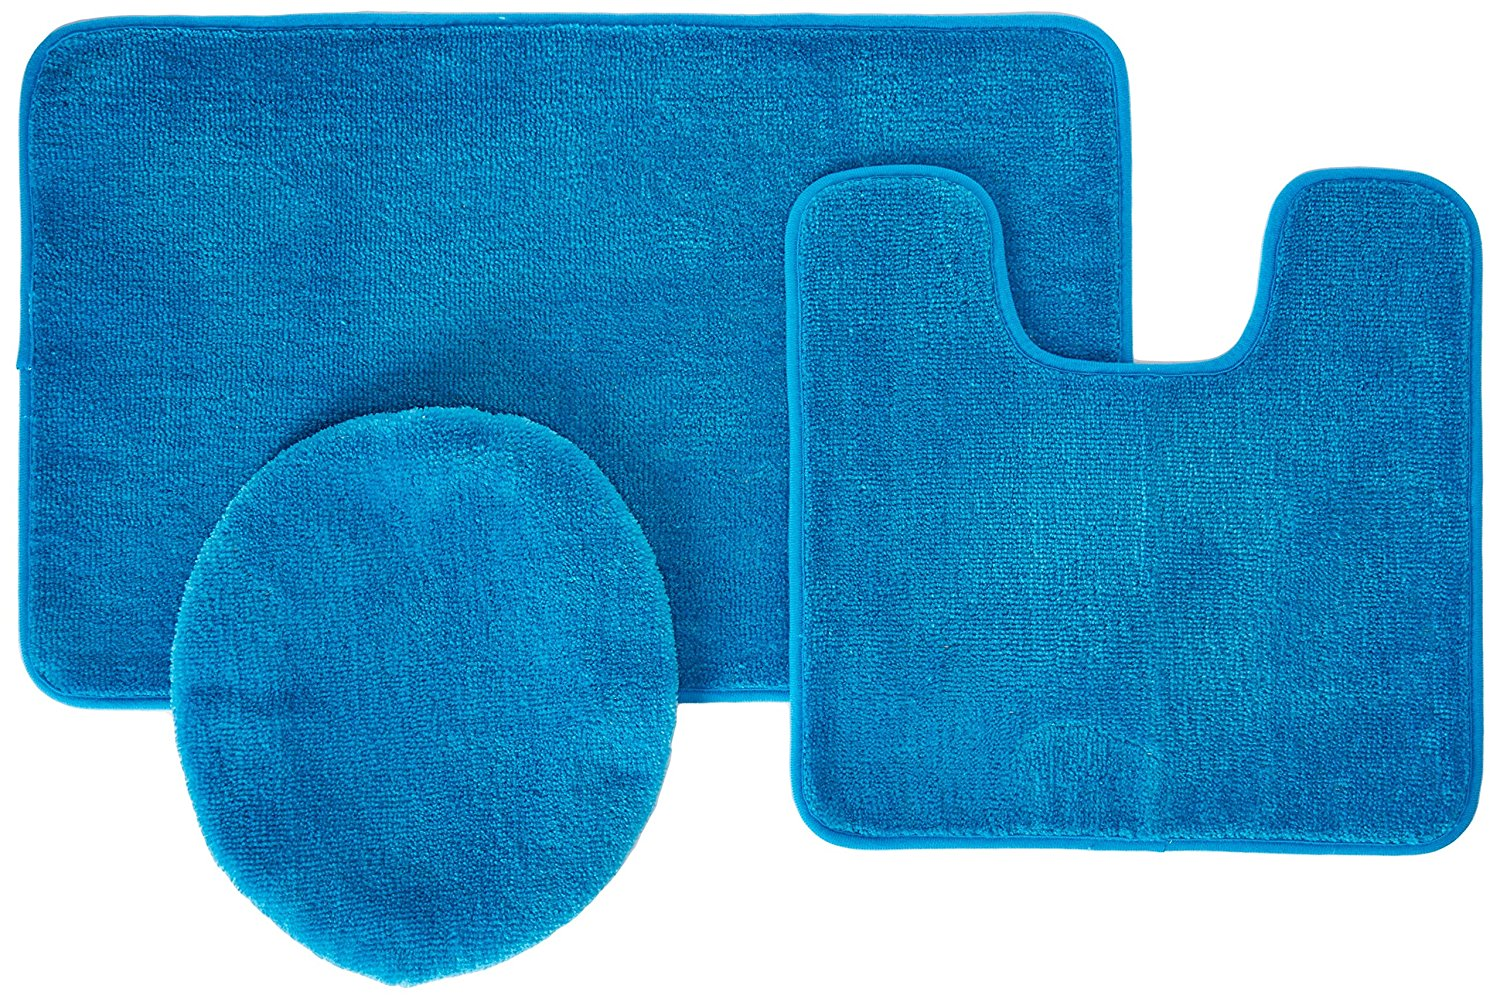 Cheap Blue Bath Seat, find Blue Bath Seat deals on line at Alibaba.com